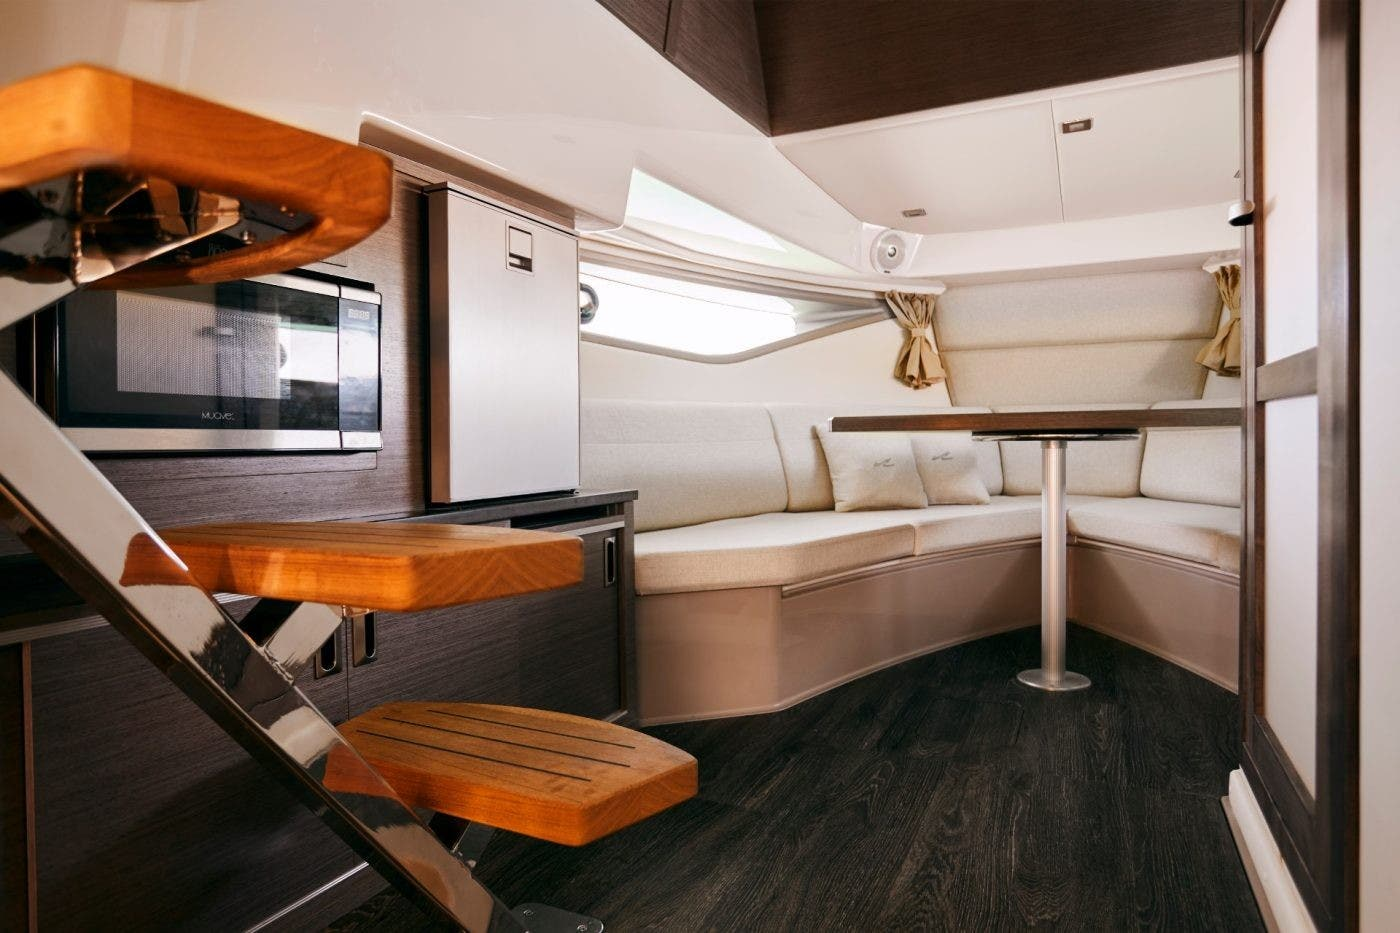 2020 Sea Ray boat for sale, model of the boat is 320 SUNDANCER & Image # 6 of 8